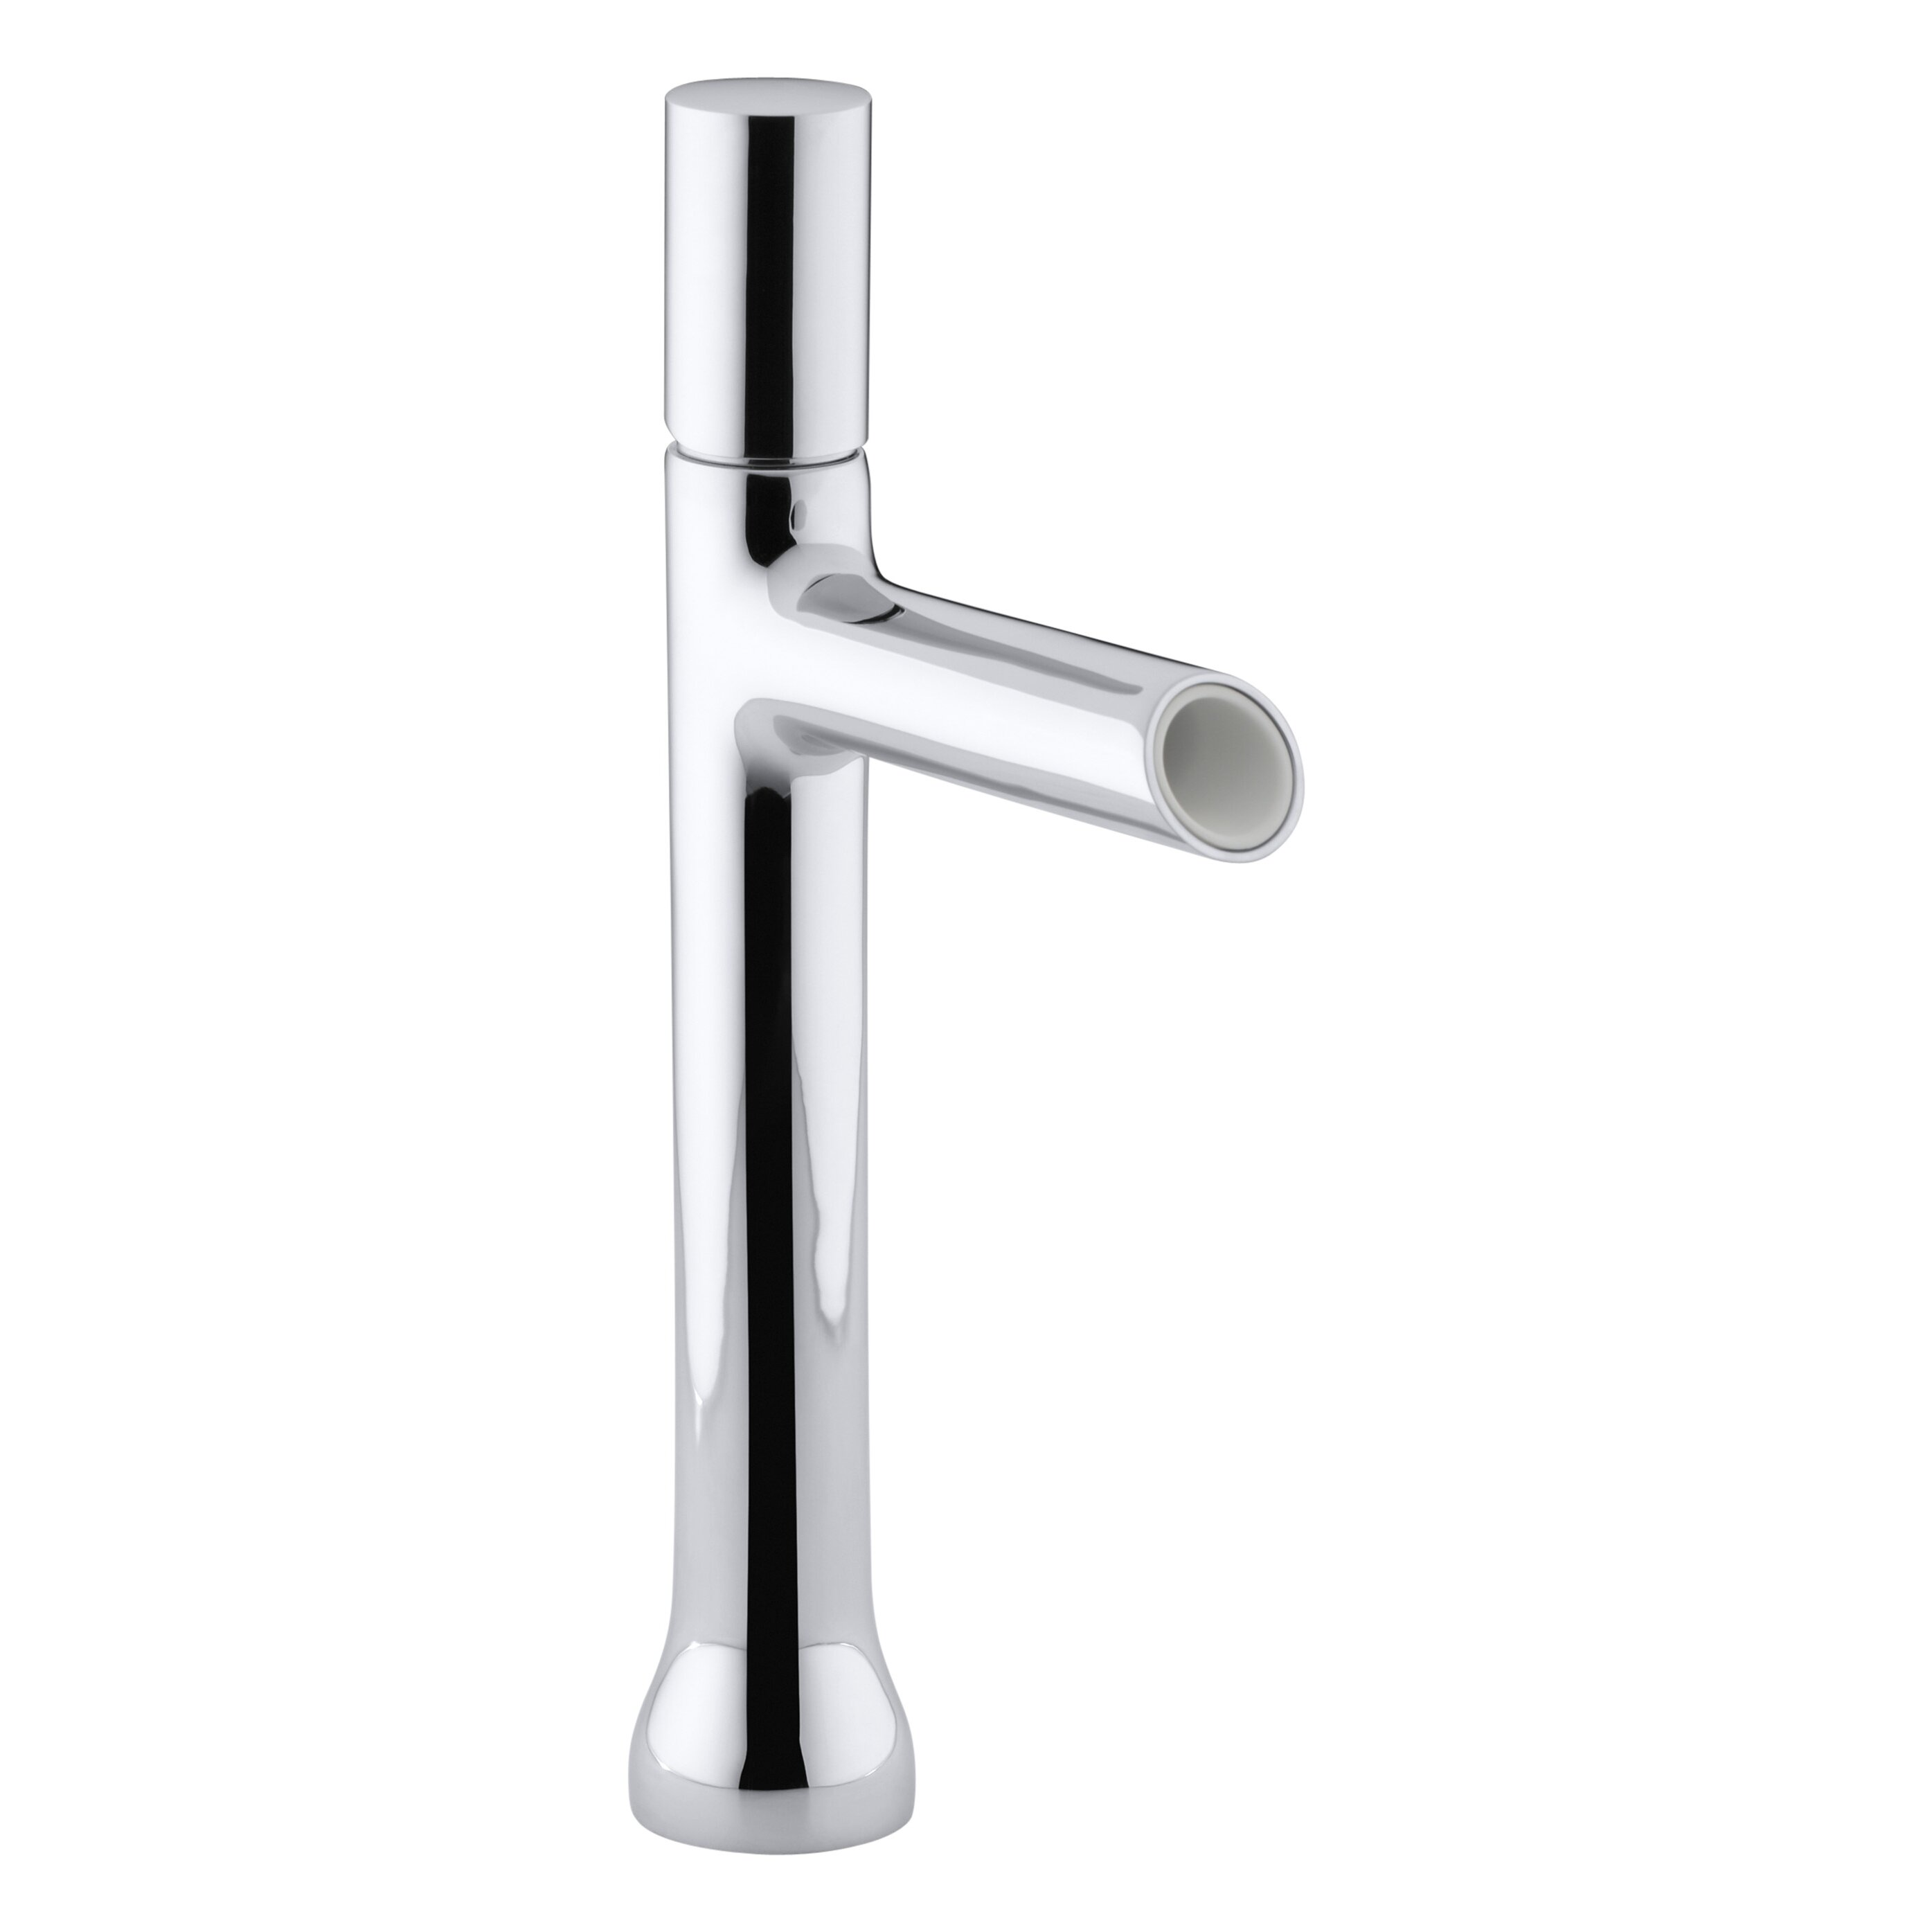 Kohler Toobi Tall Single Hole Bathroom Sink Faucet Reviews Wayfair